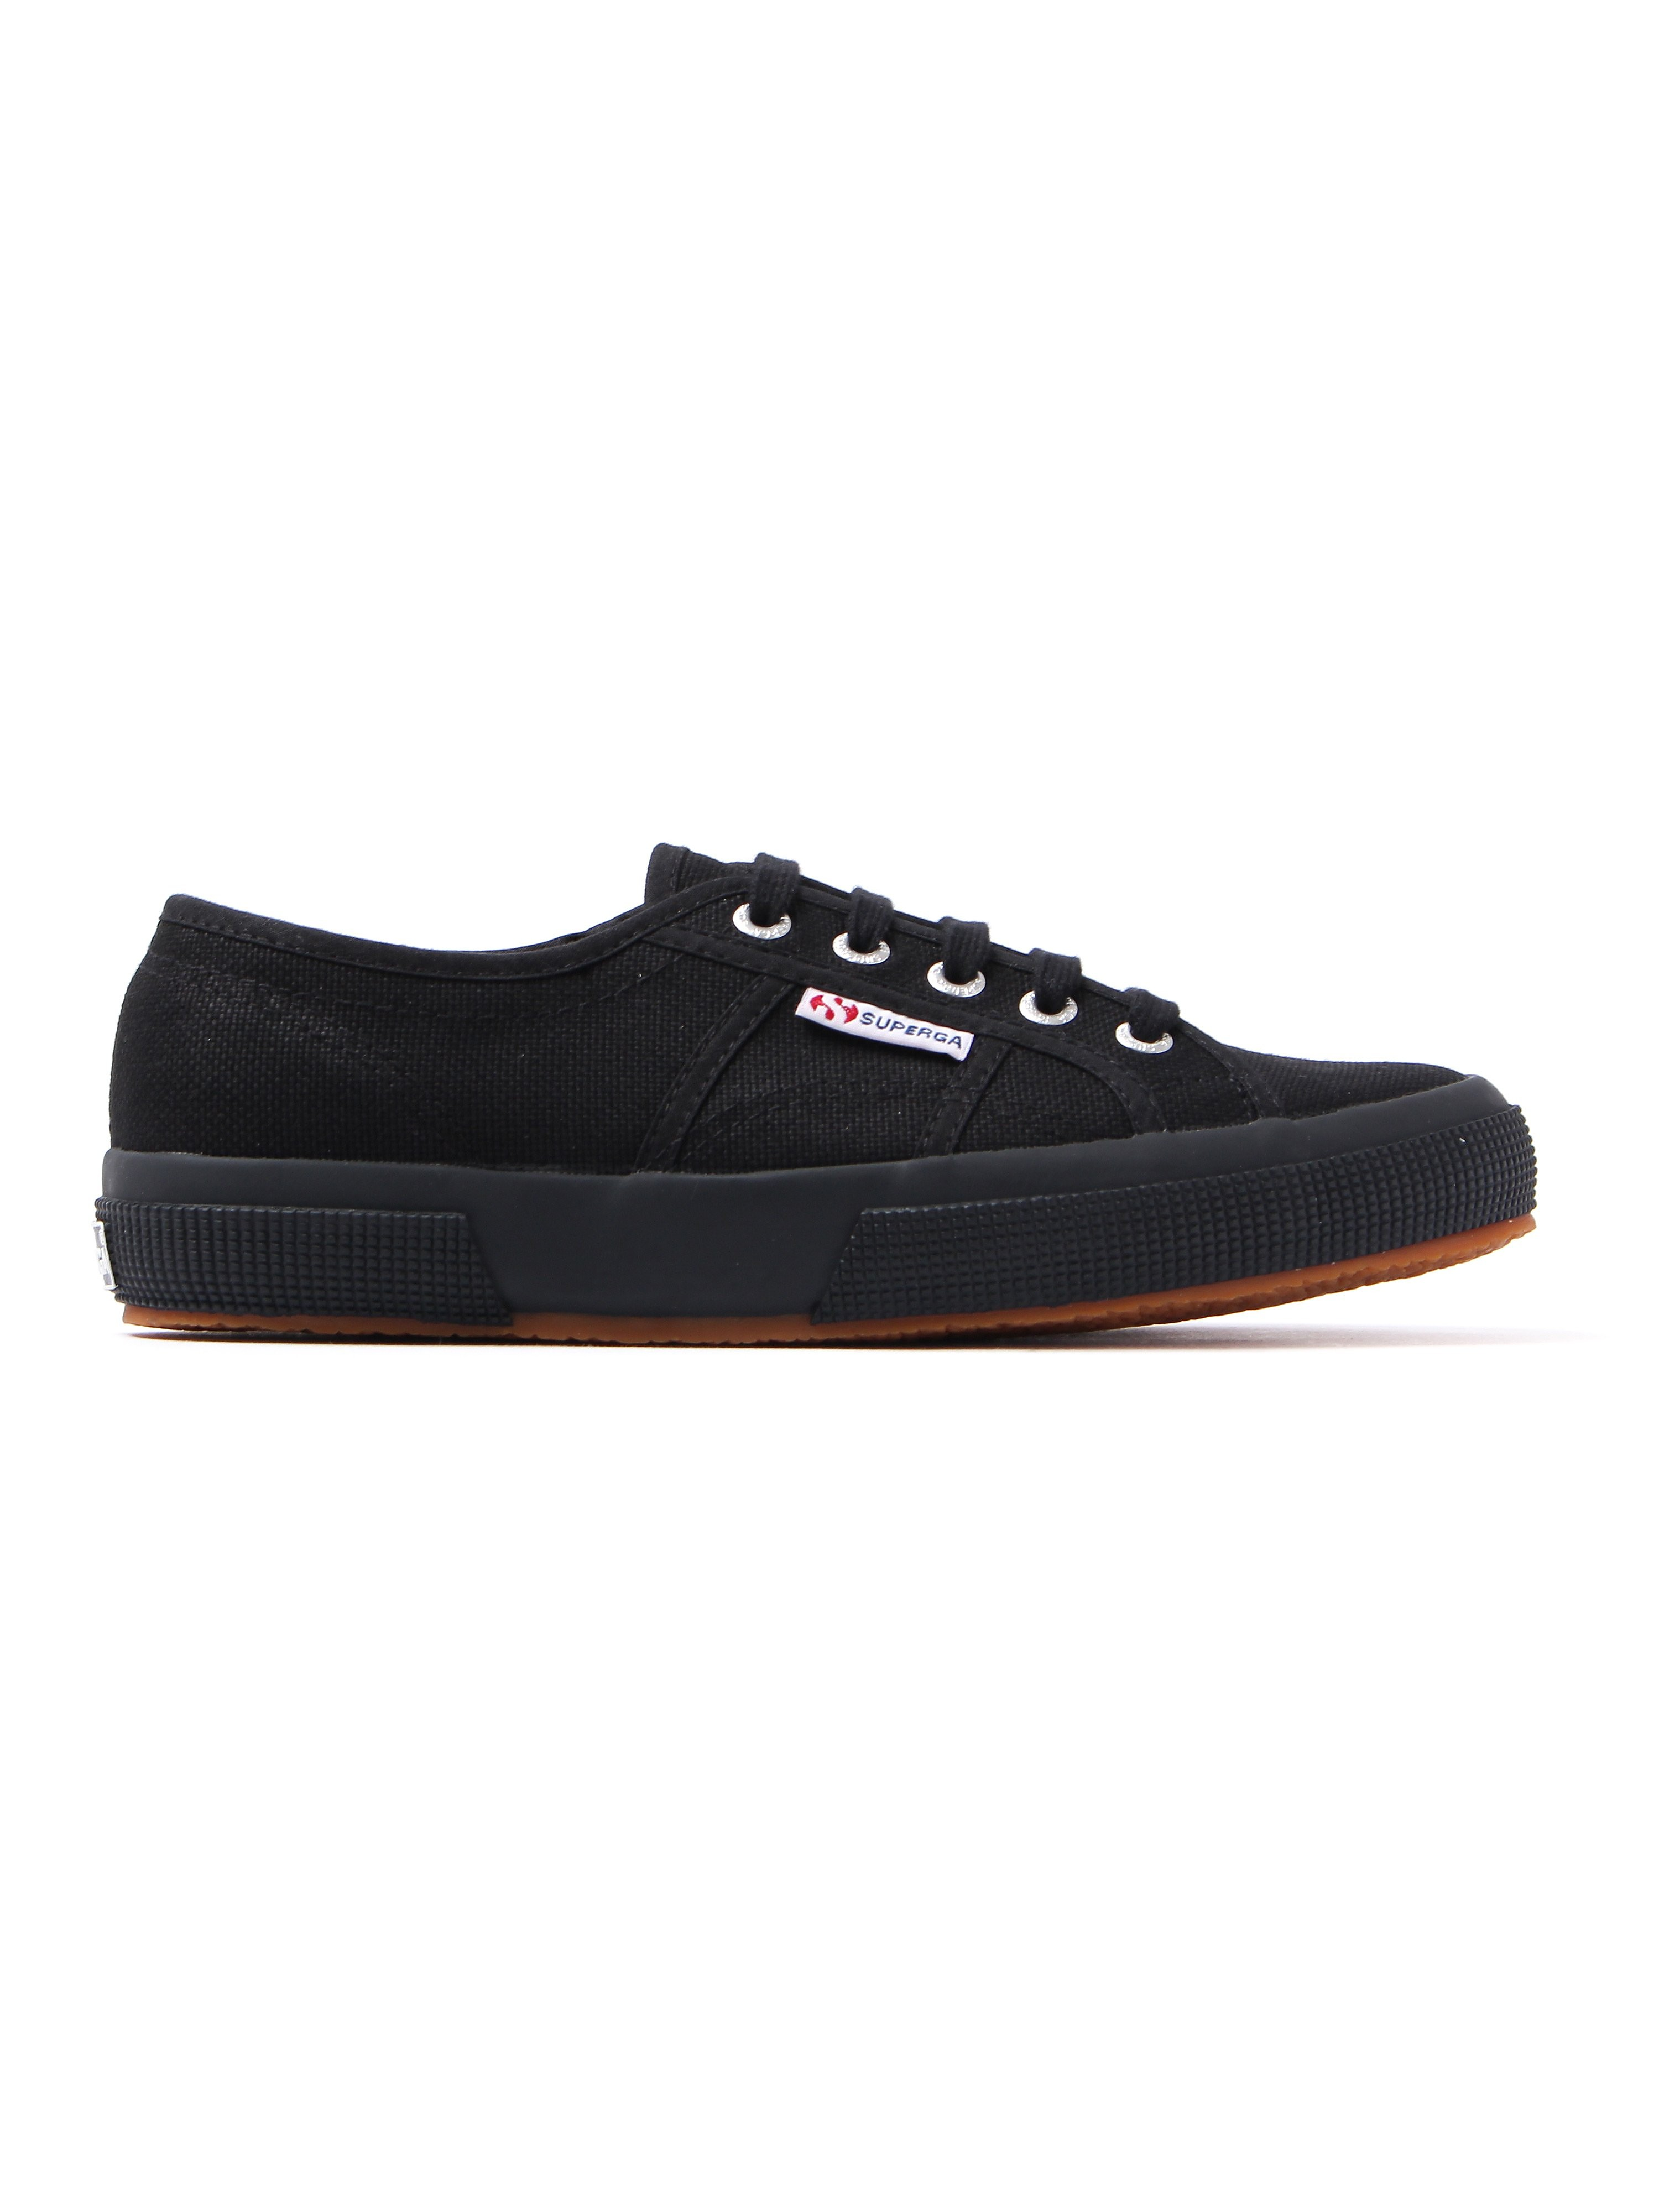 Superga Women's 2750 Cotu Classics Canvas Trainers - Black